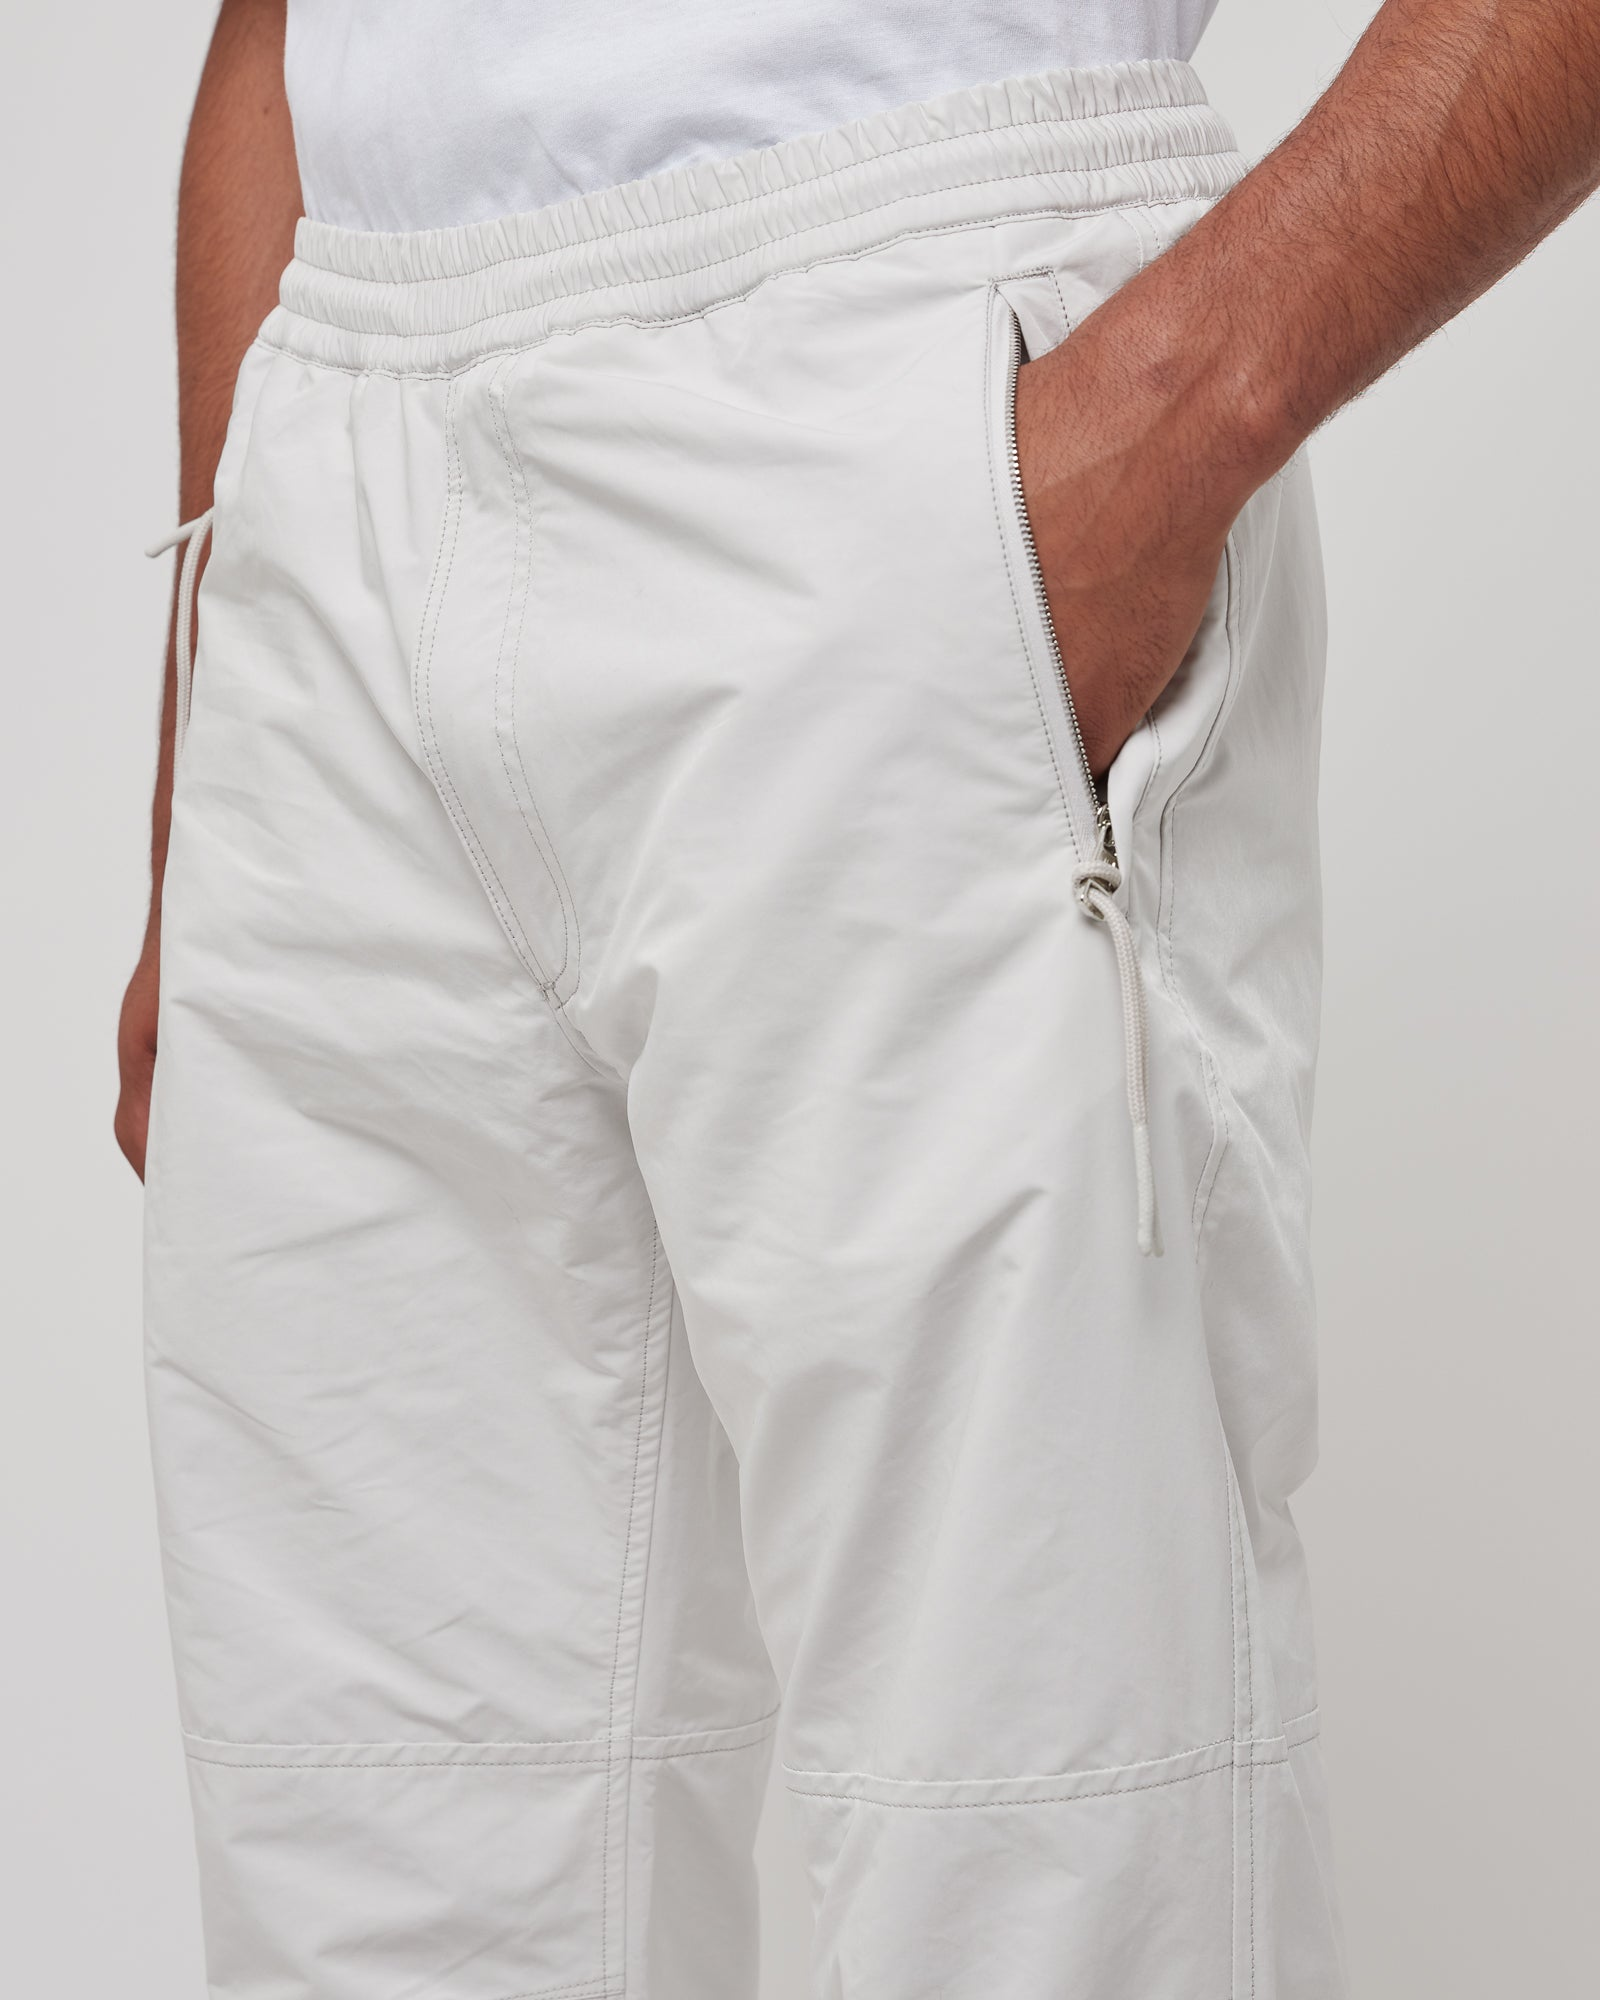 Sportivo Pants in White